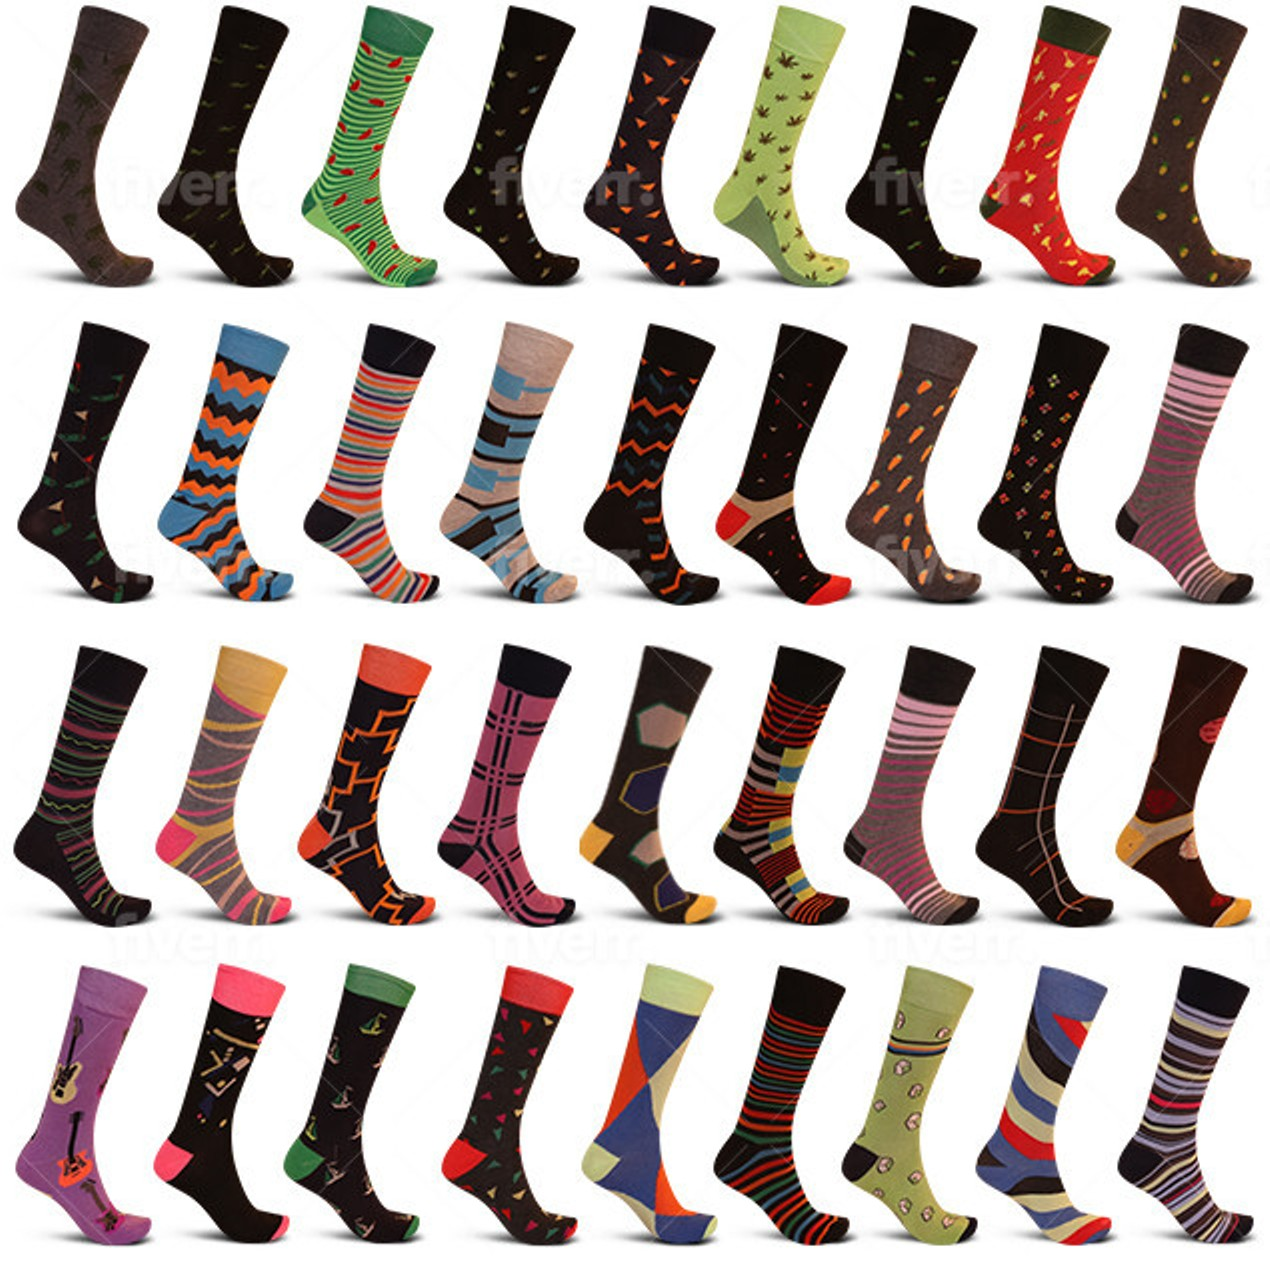 24-Pack Men's James Fiallo Premium Quality Dress Socks